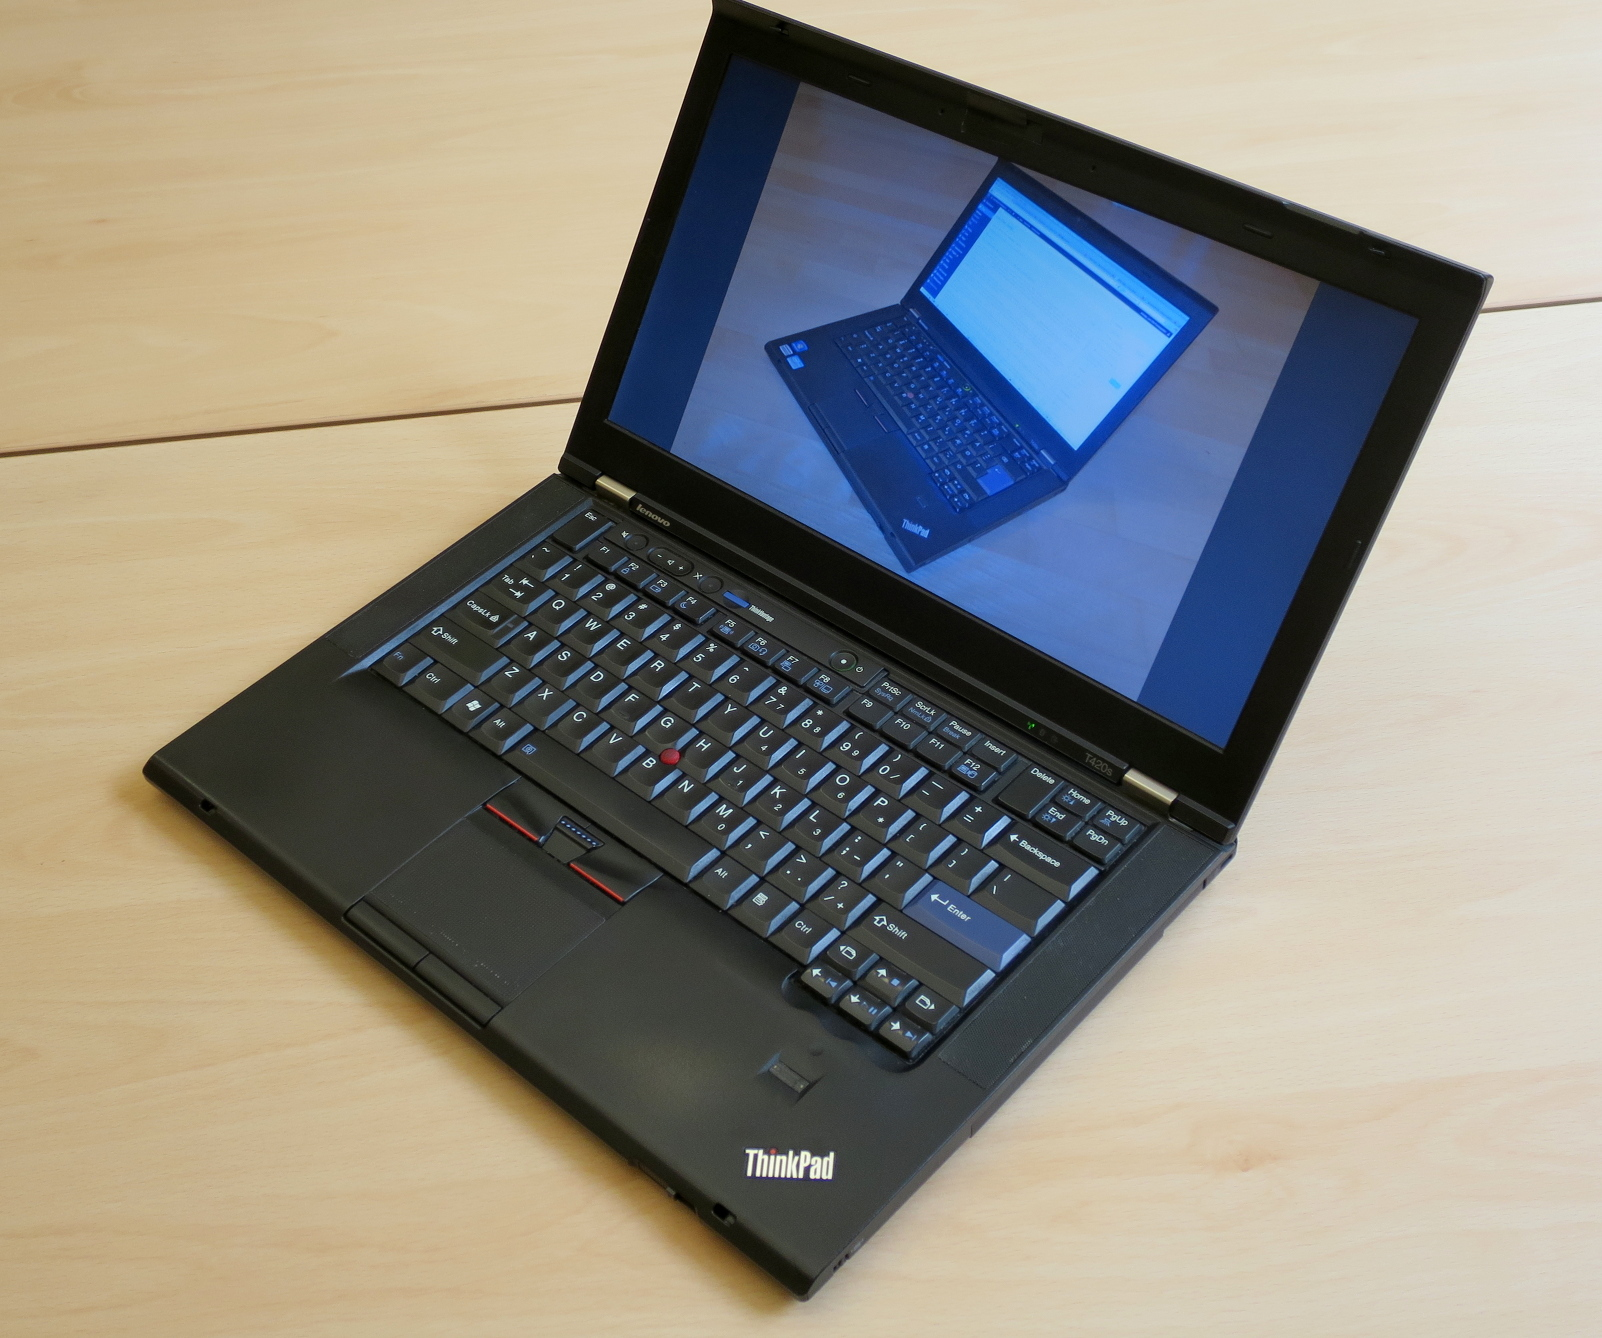 Thinkpad T420s showing a picture of its younger self